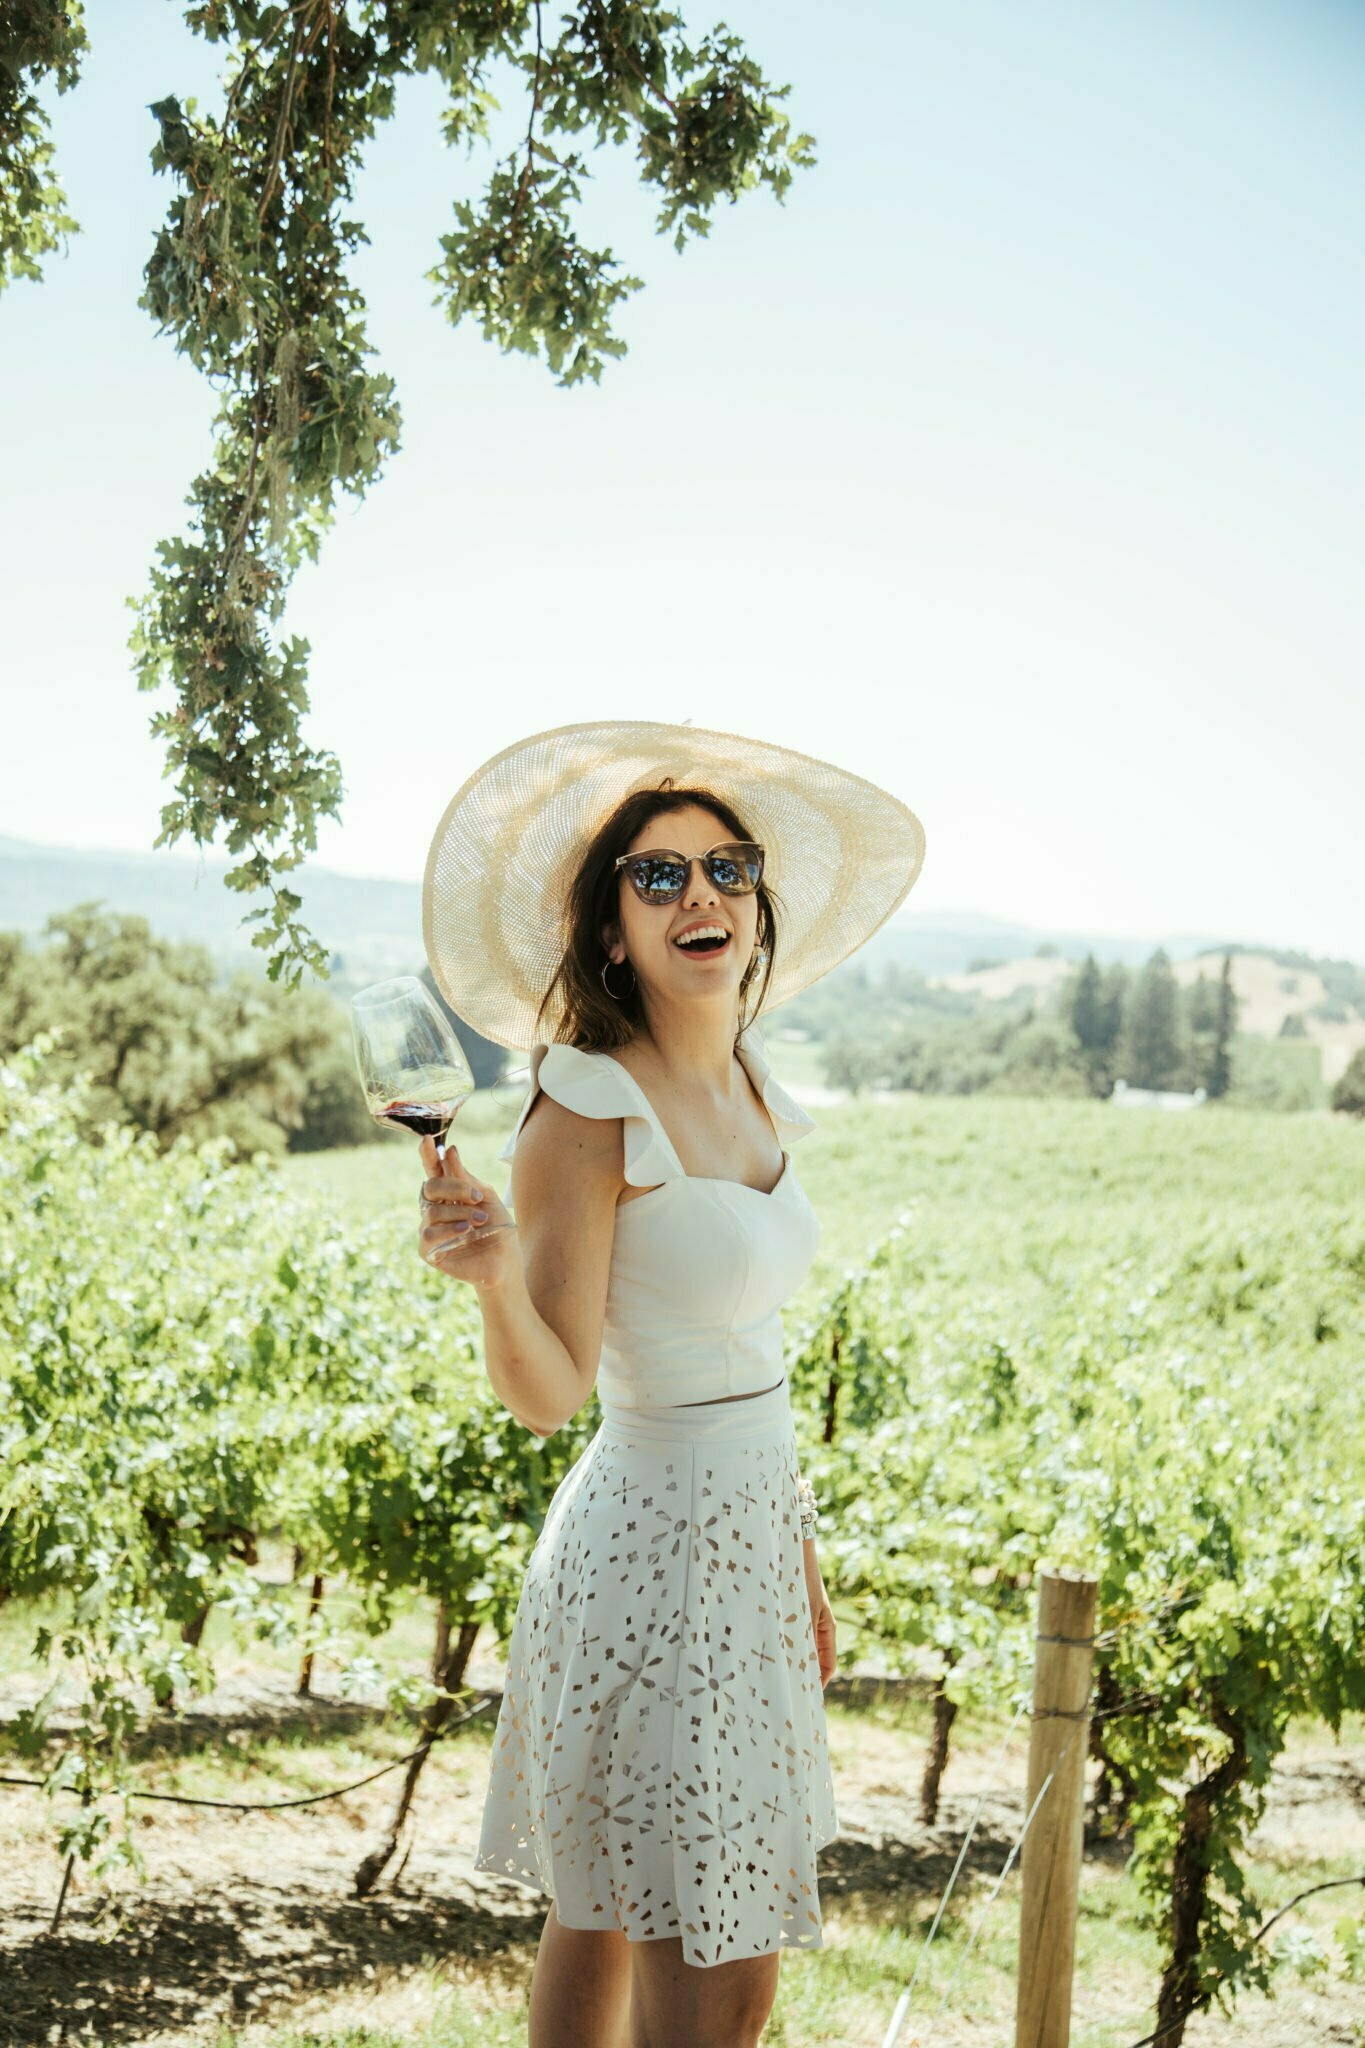 About Napa Valley 2